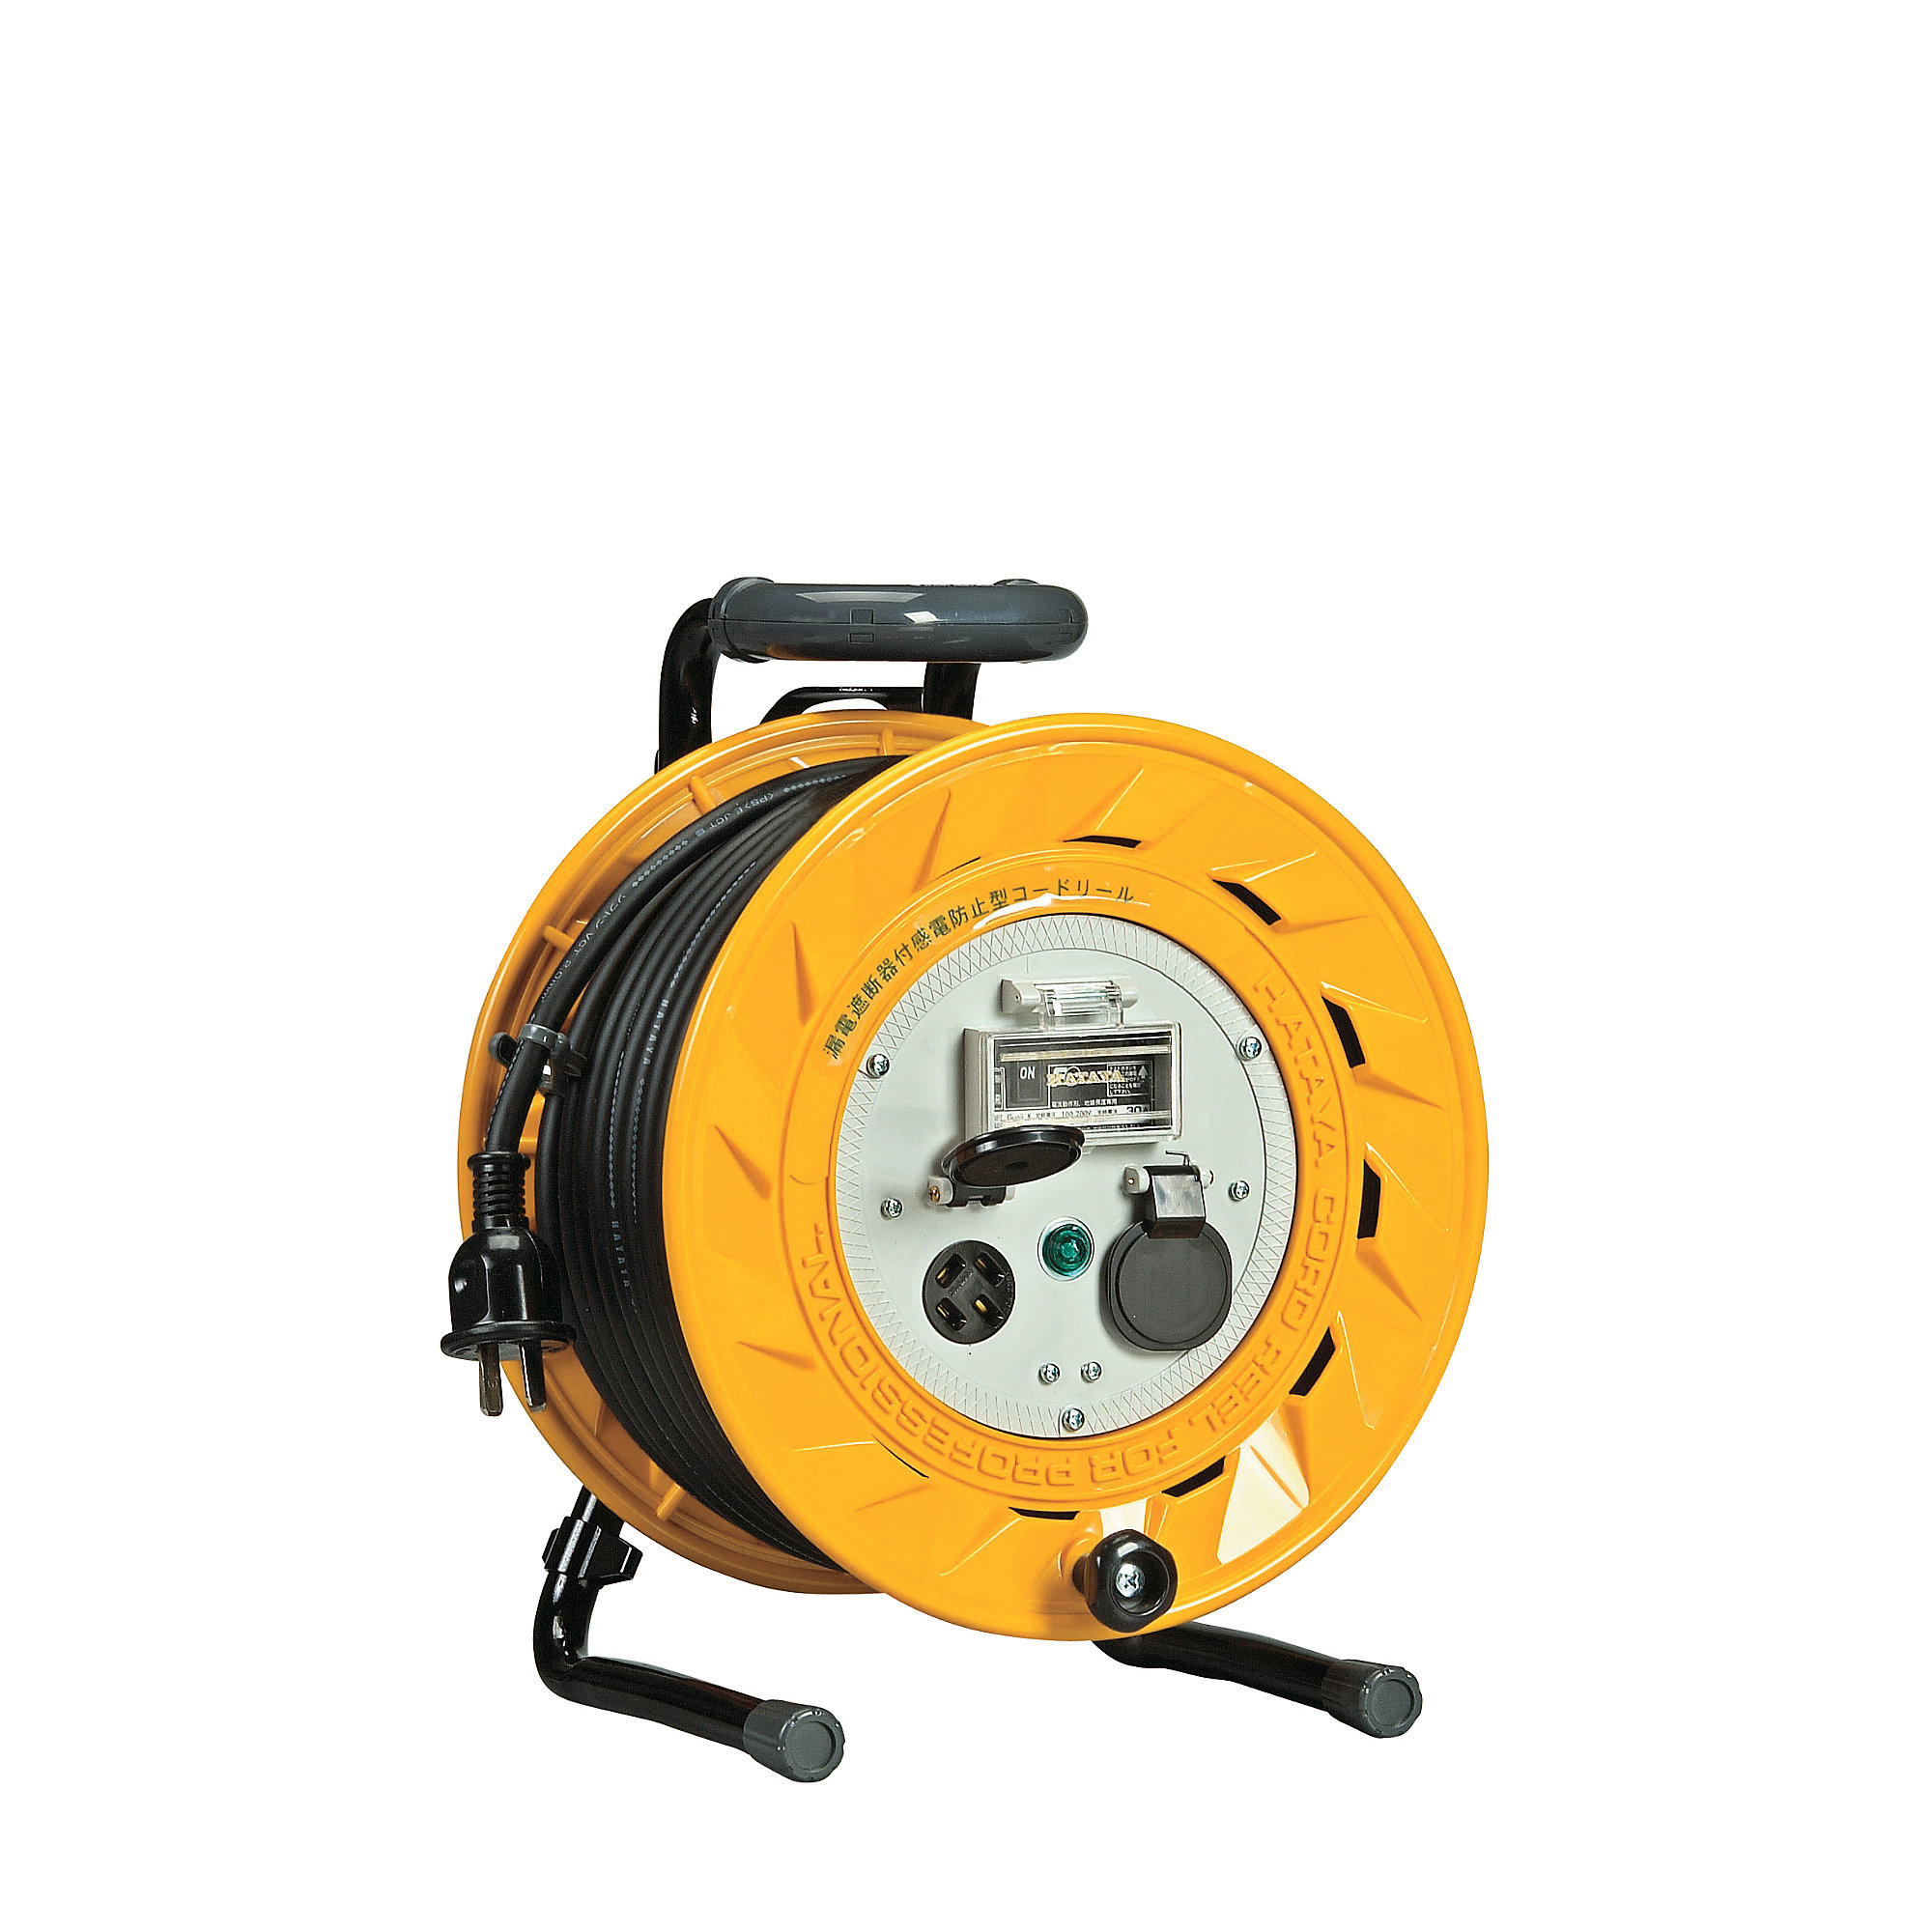 Cord Reel Three Phase 200 V With Breaker Electric Wire Length M 20 Retractable Extension W Circuit 2050